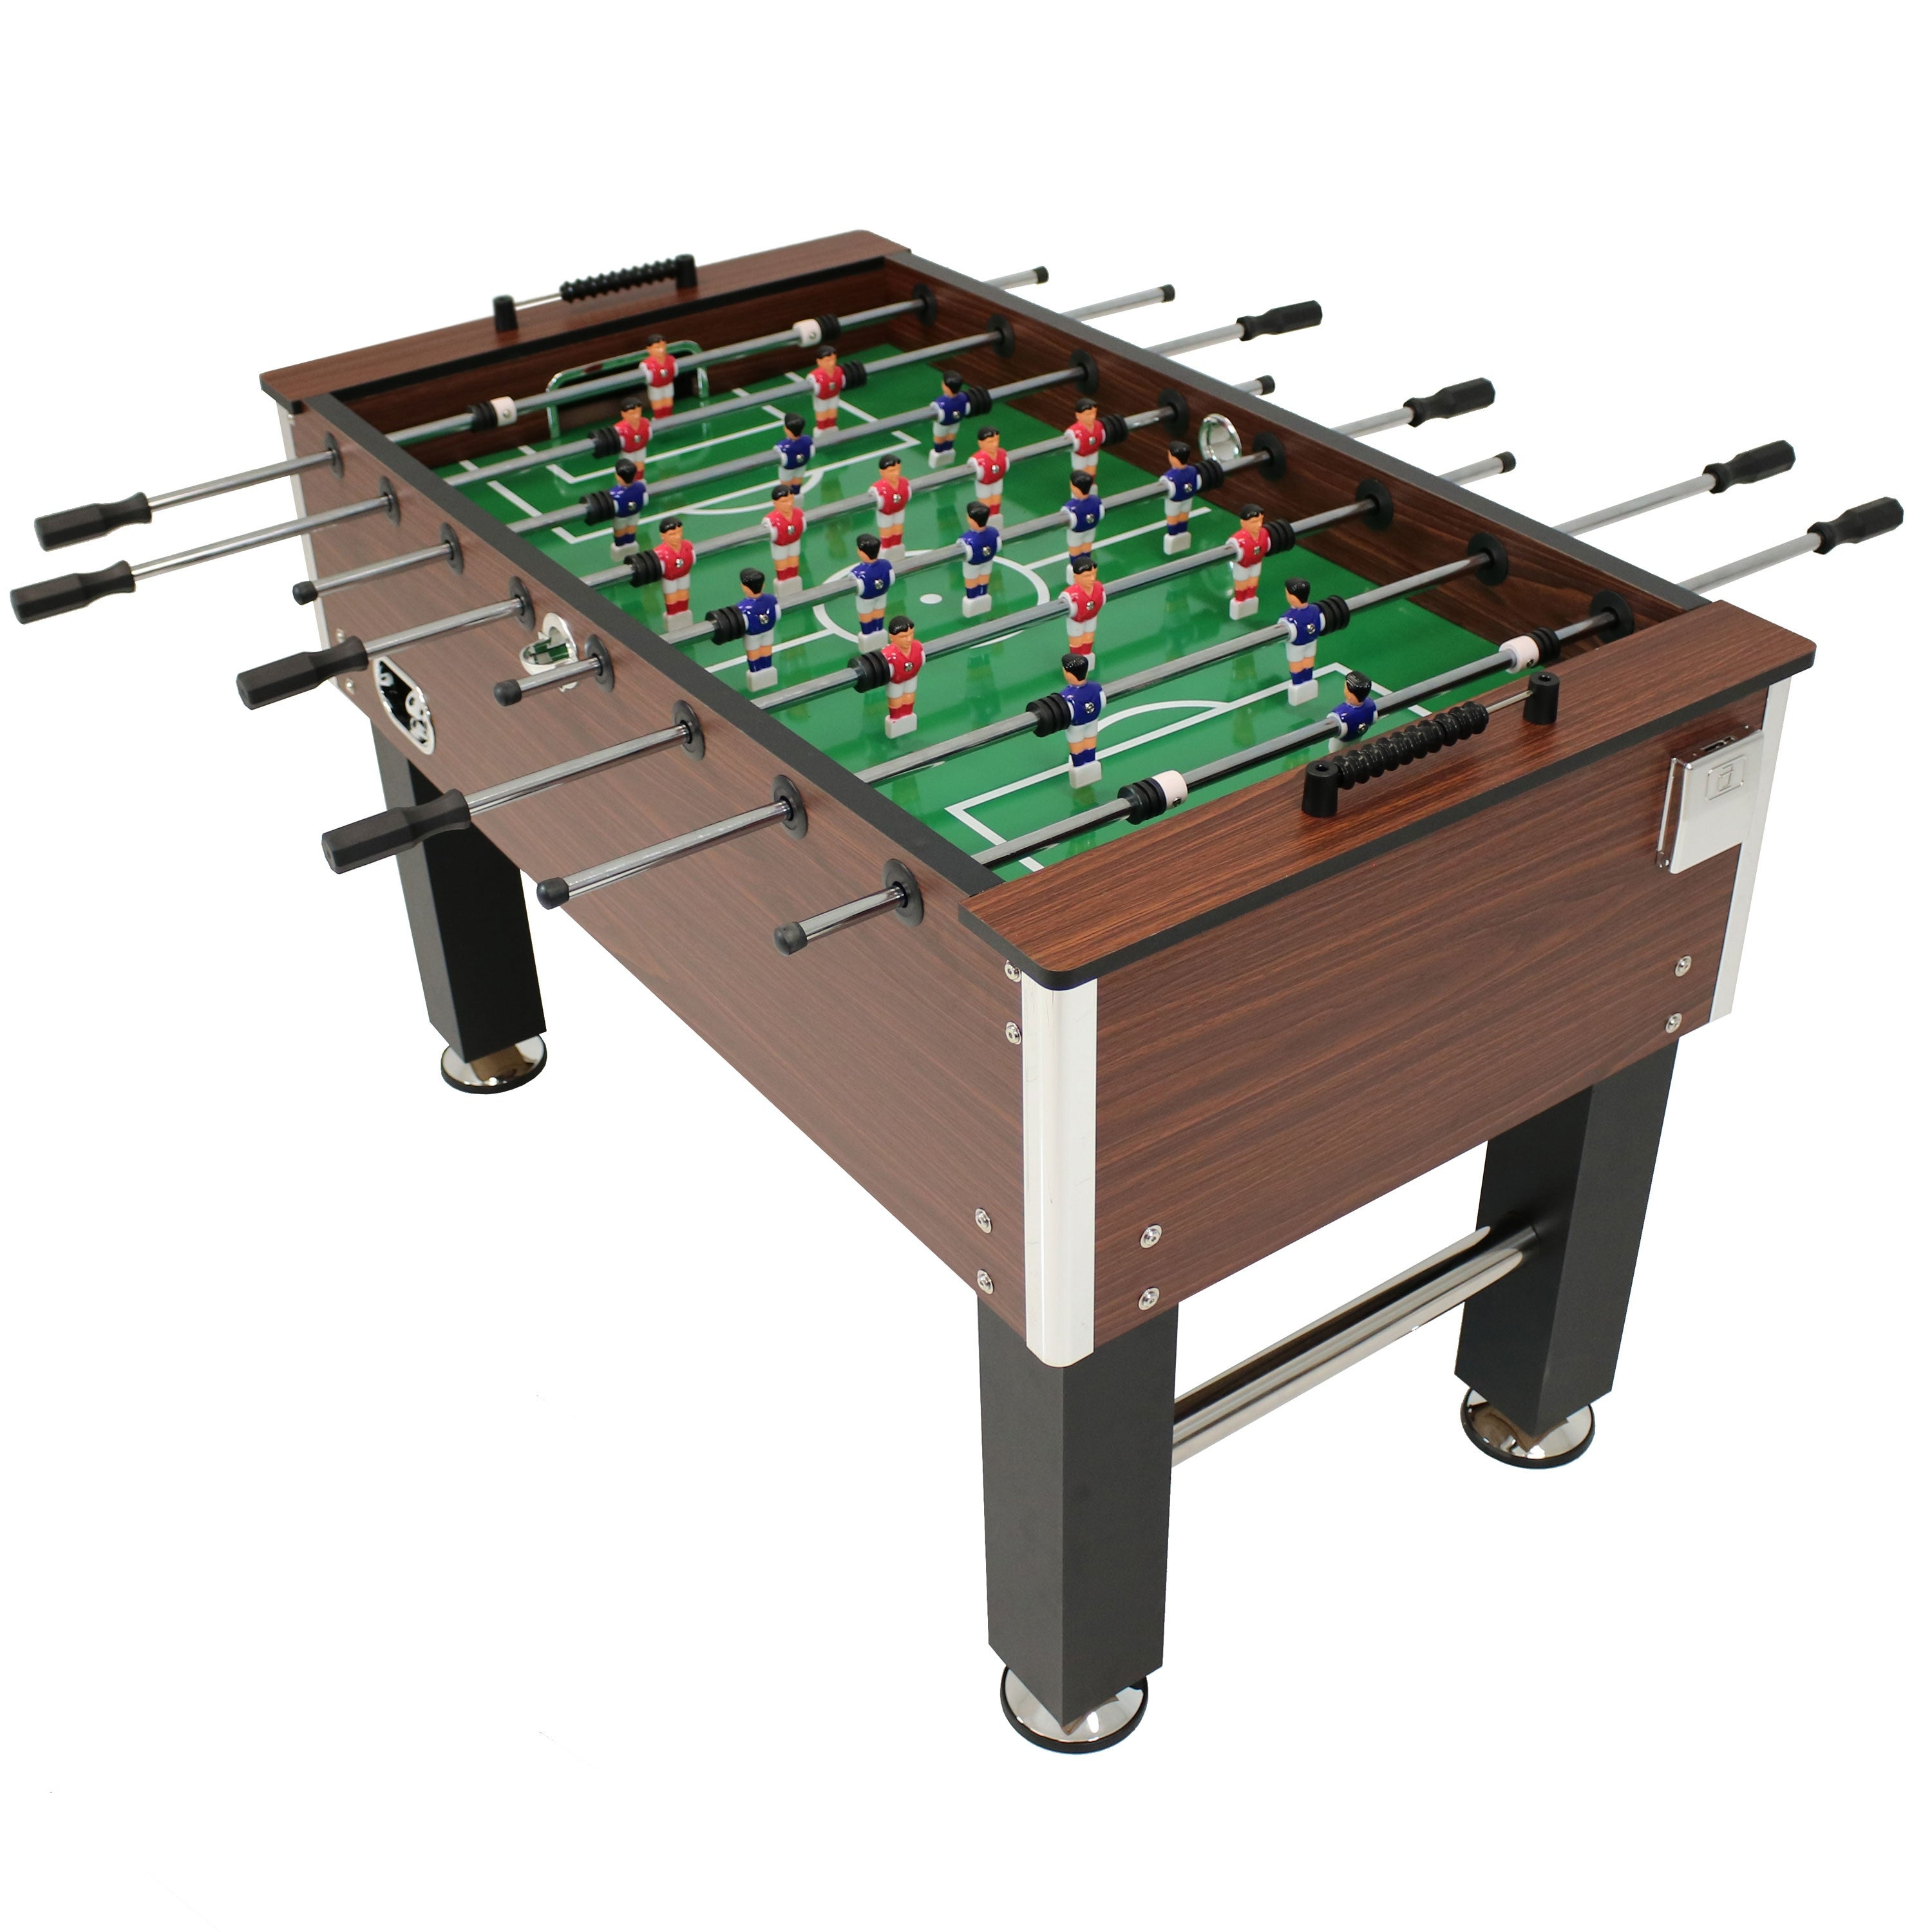 Sunnydaze Faux Wood Foosball Game Table With Folding Drink Holders   55 Inch